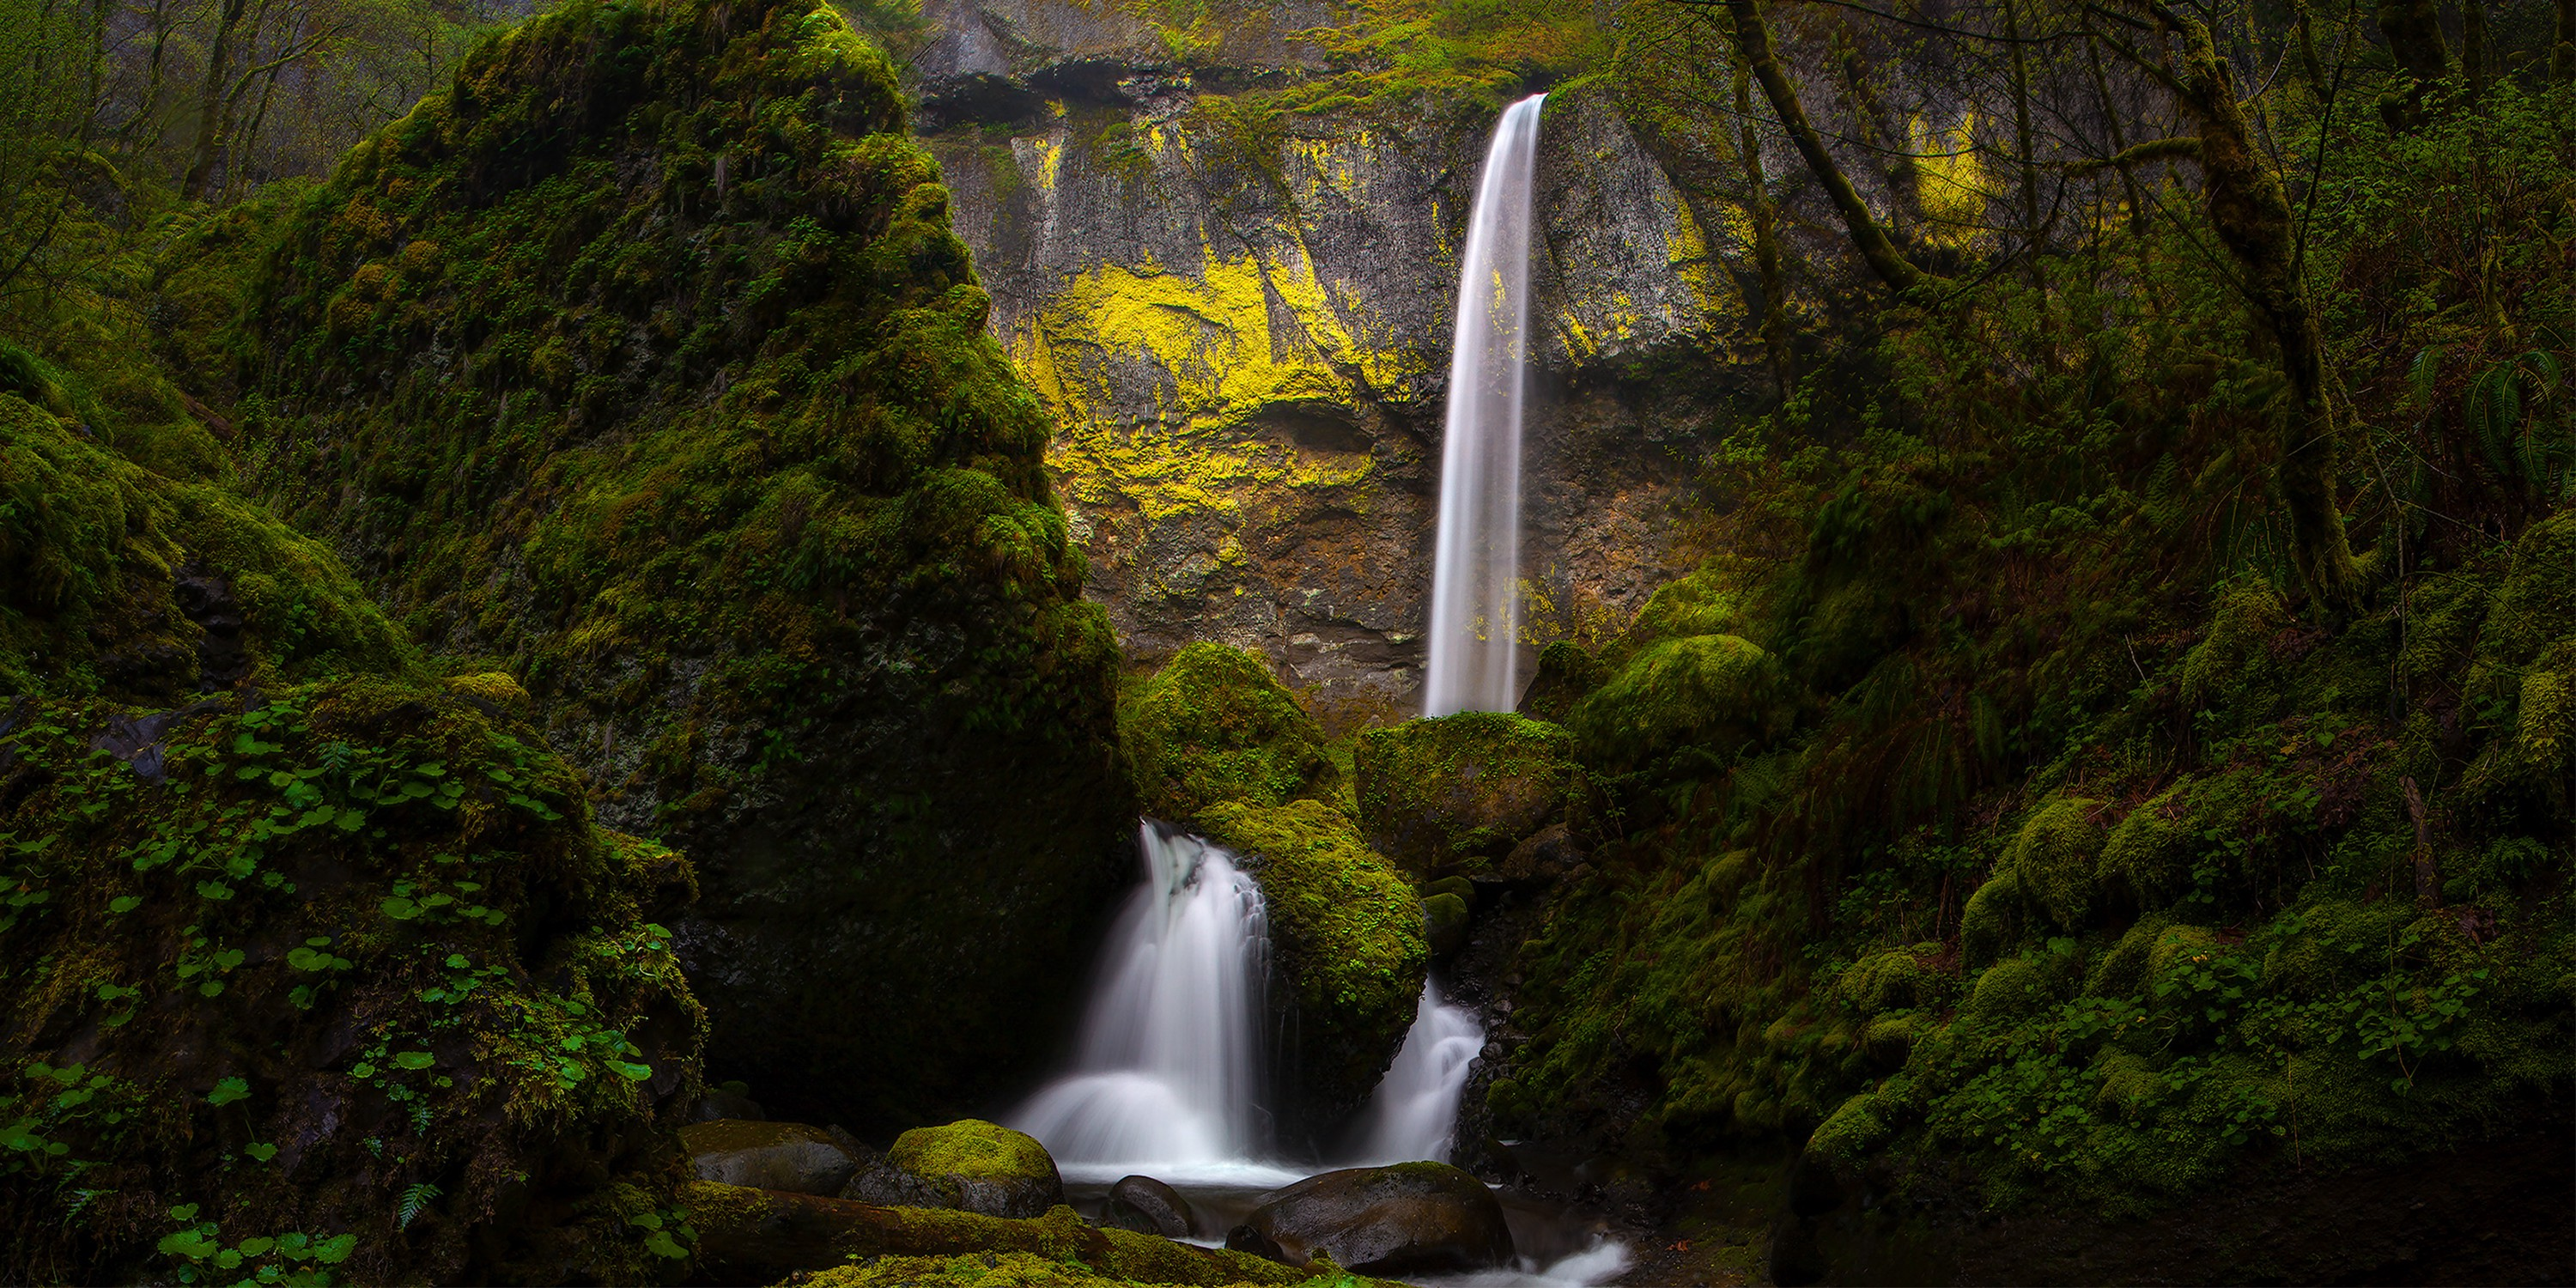 Mossy rocks surround a white crystal clear waterfall in multiple tiers